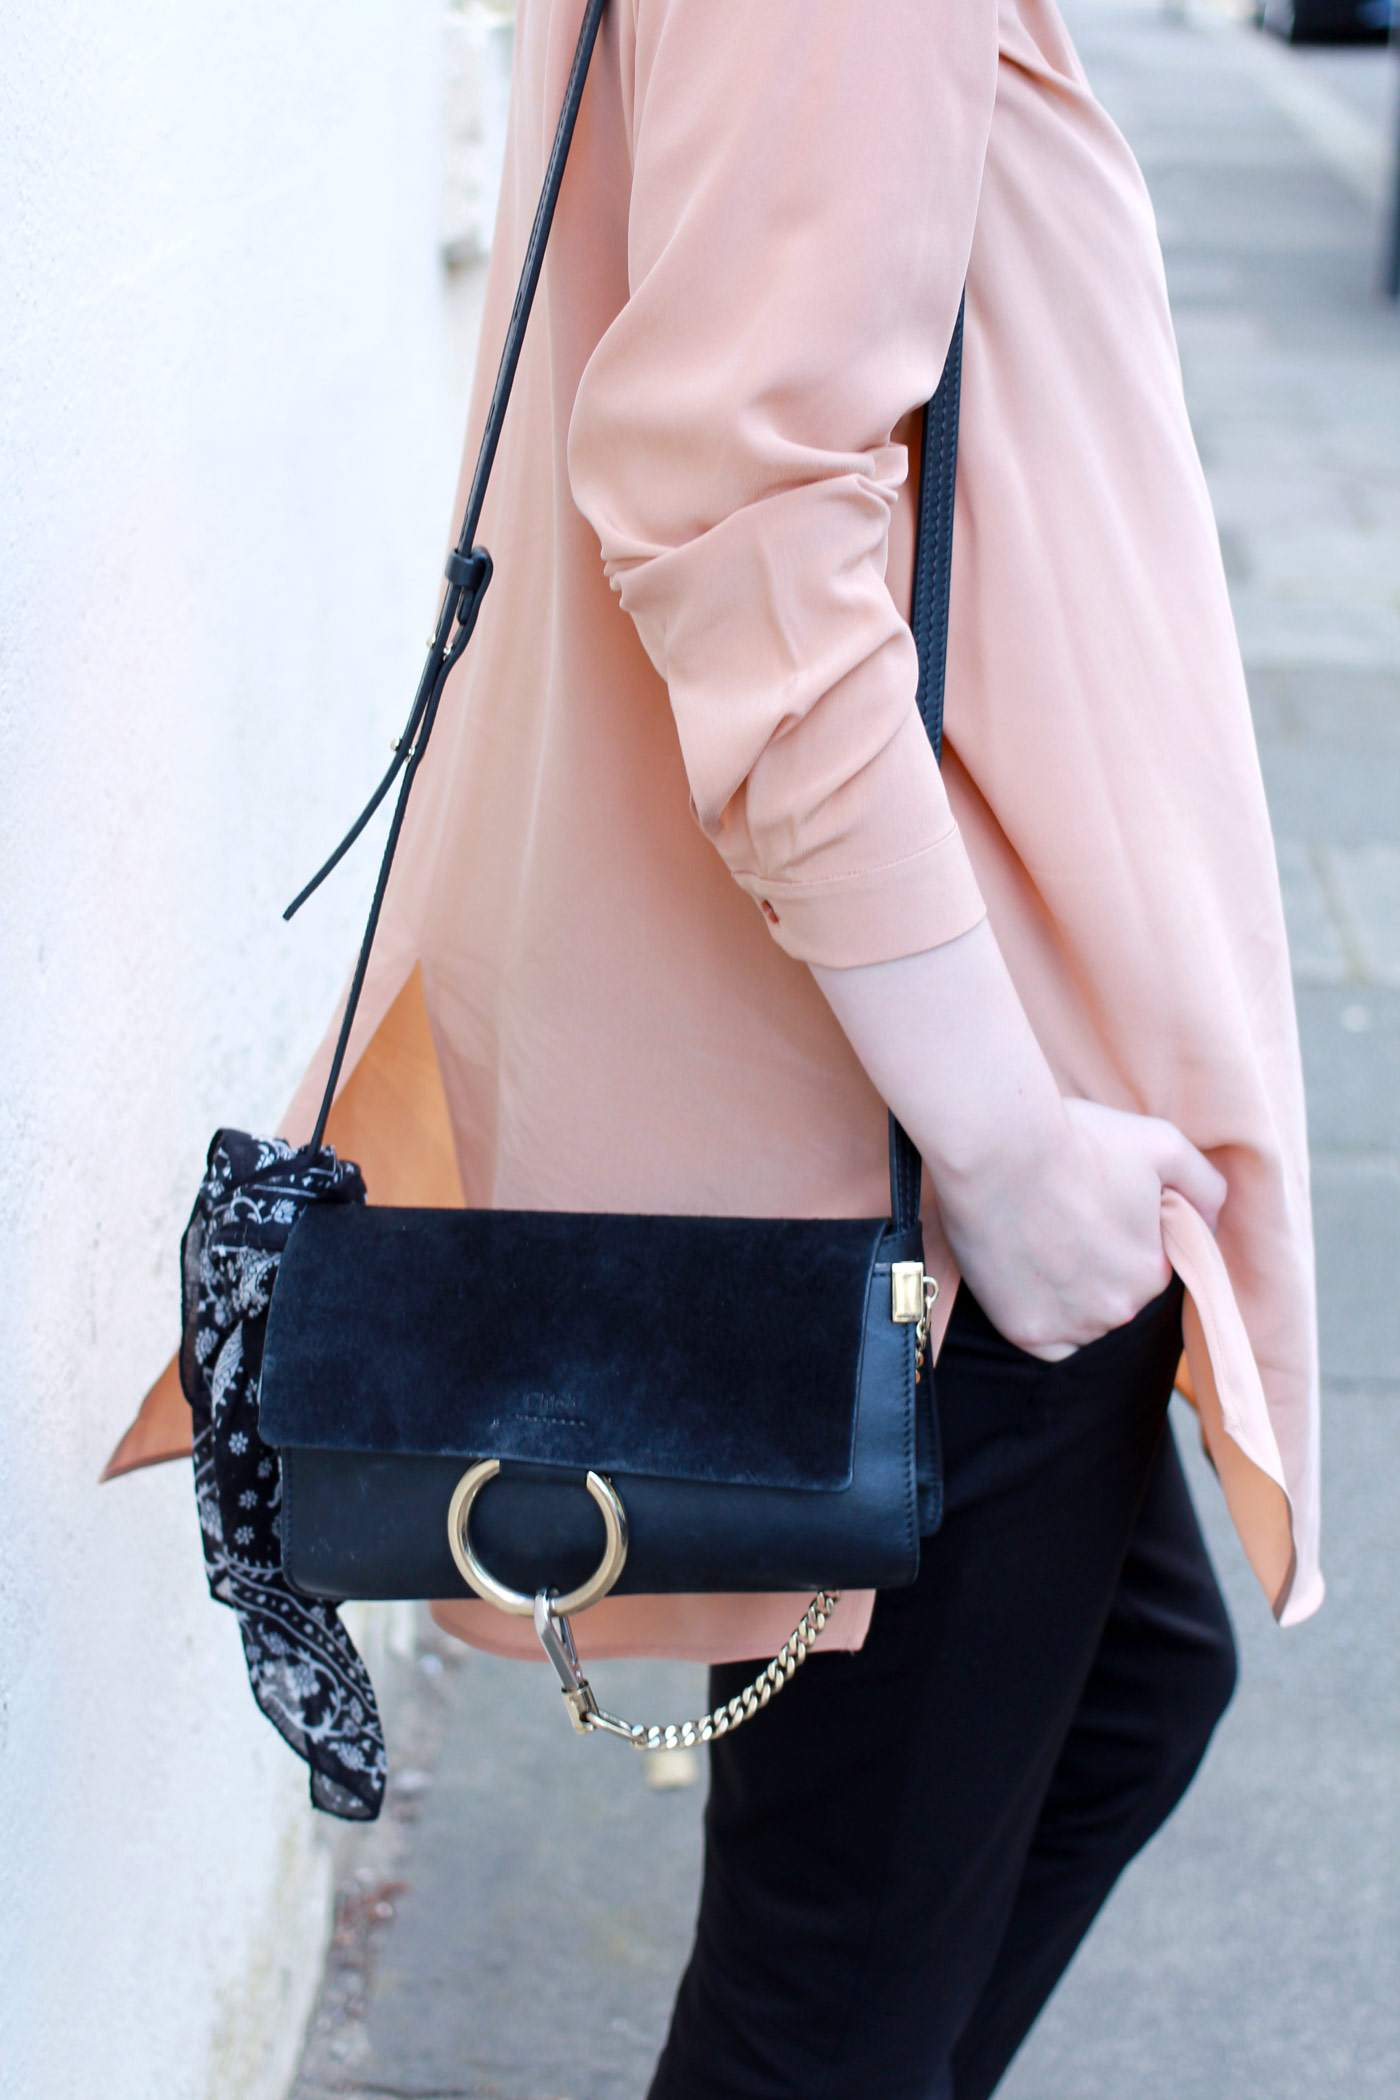 Boden-flared-trousers-COS-peach-shirt-Chloe-faye-bag-black-gucci-loafers-8